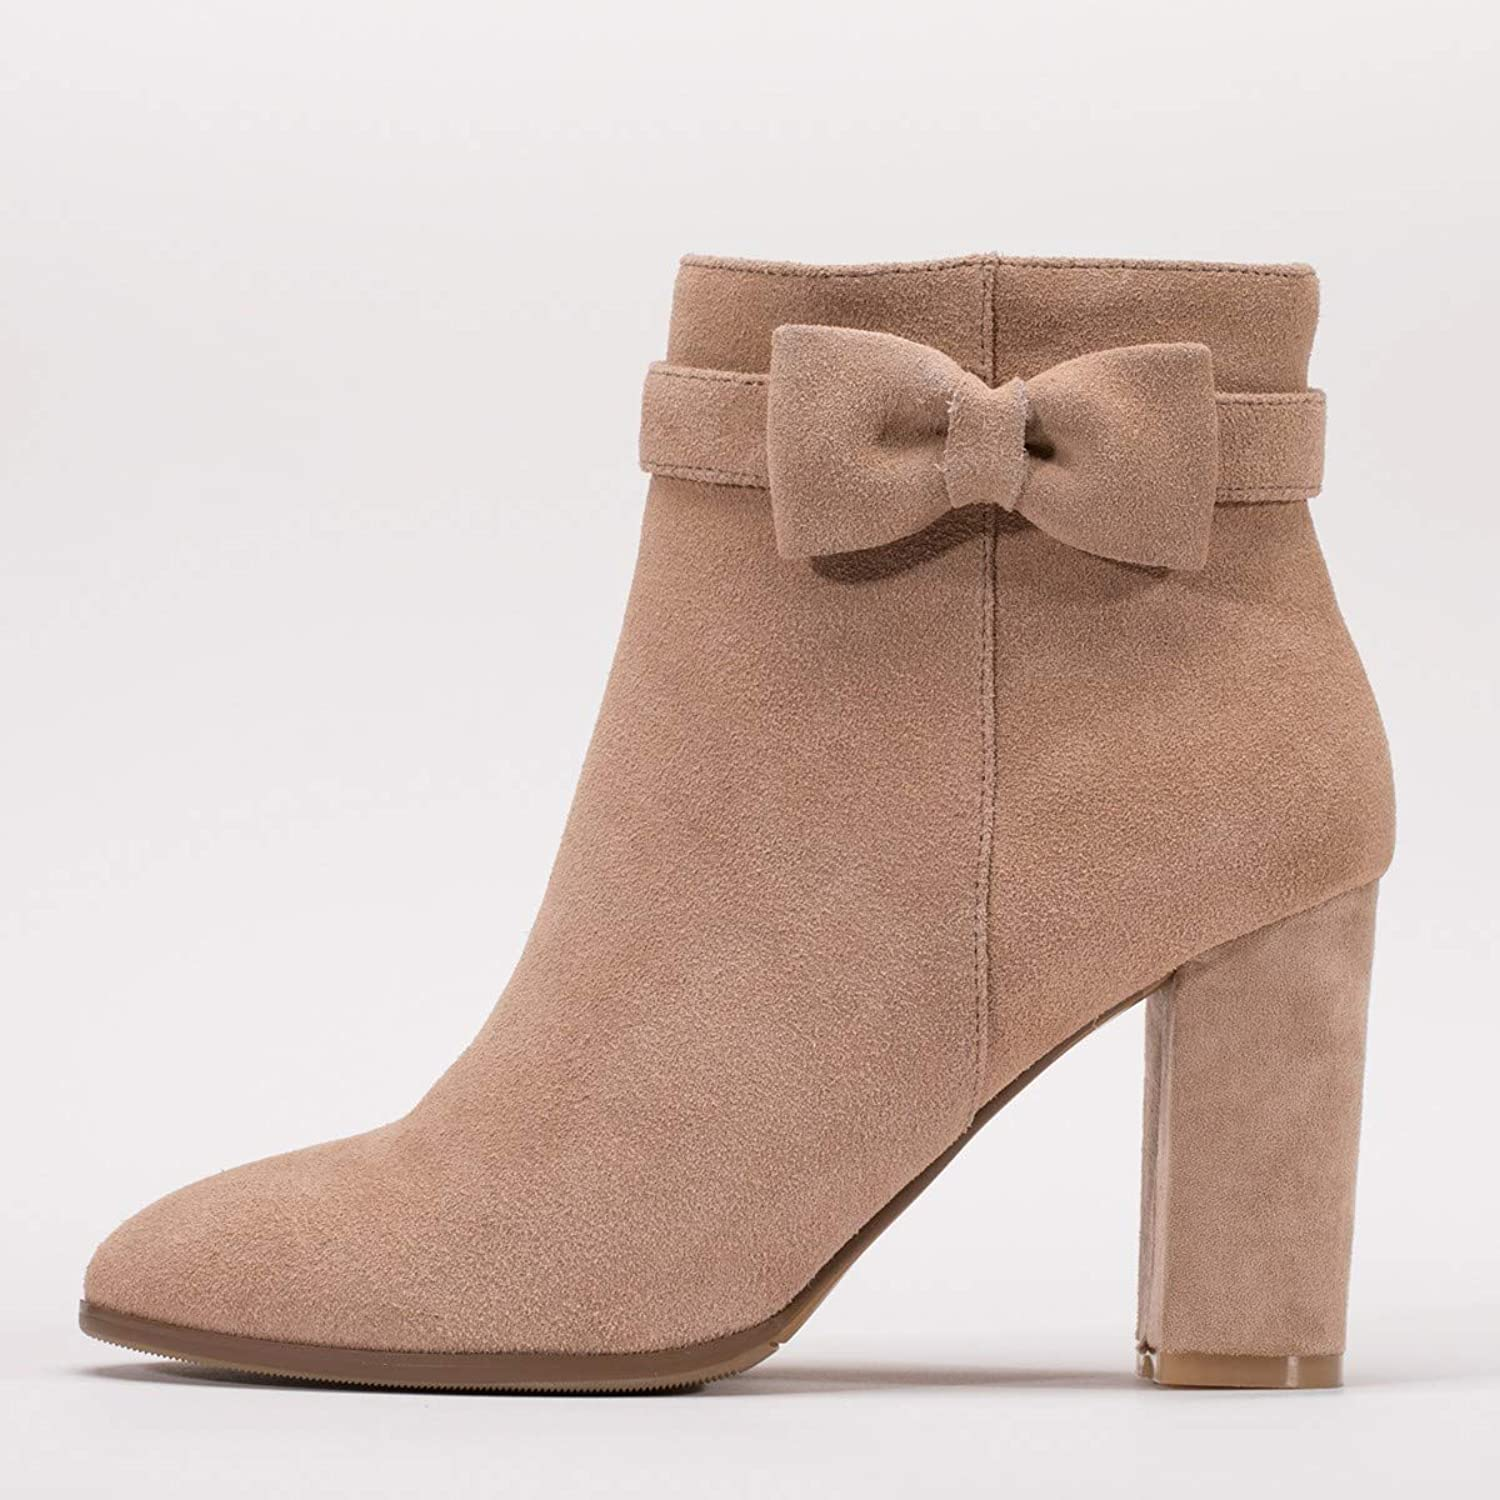 SFSYDDY Popular shoes Thick with Martin Boots with High 9Cm Wild and Ankle Boots High Heel Boots Short Boots.